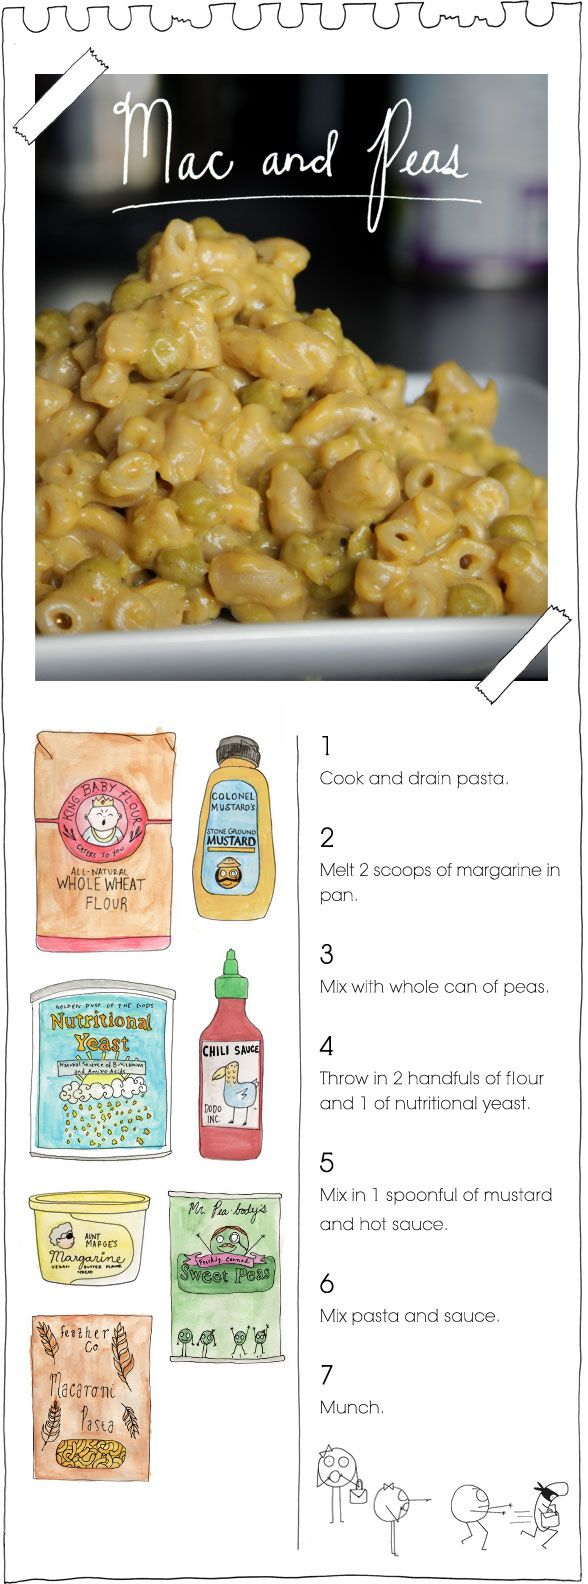 One of my favorite easy vegan dishes! Make sure to use the whole can of peas, NOT drained.